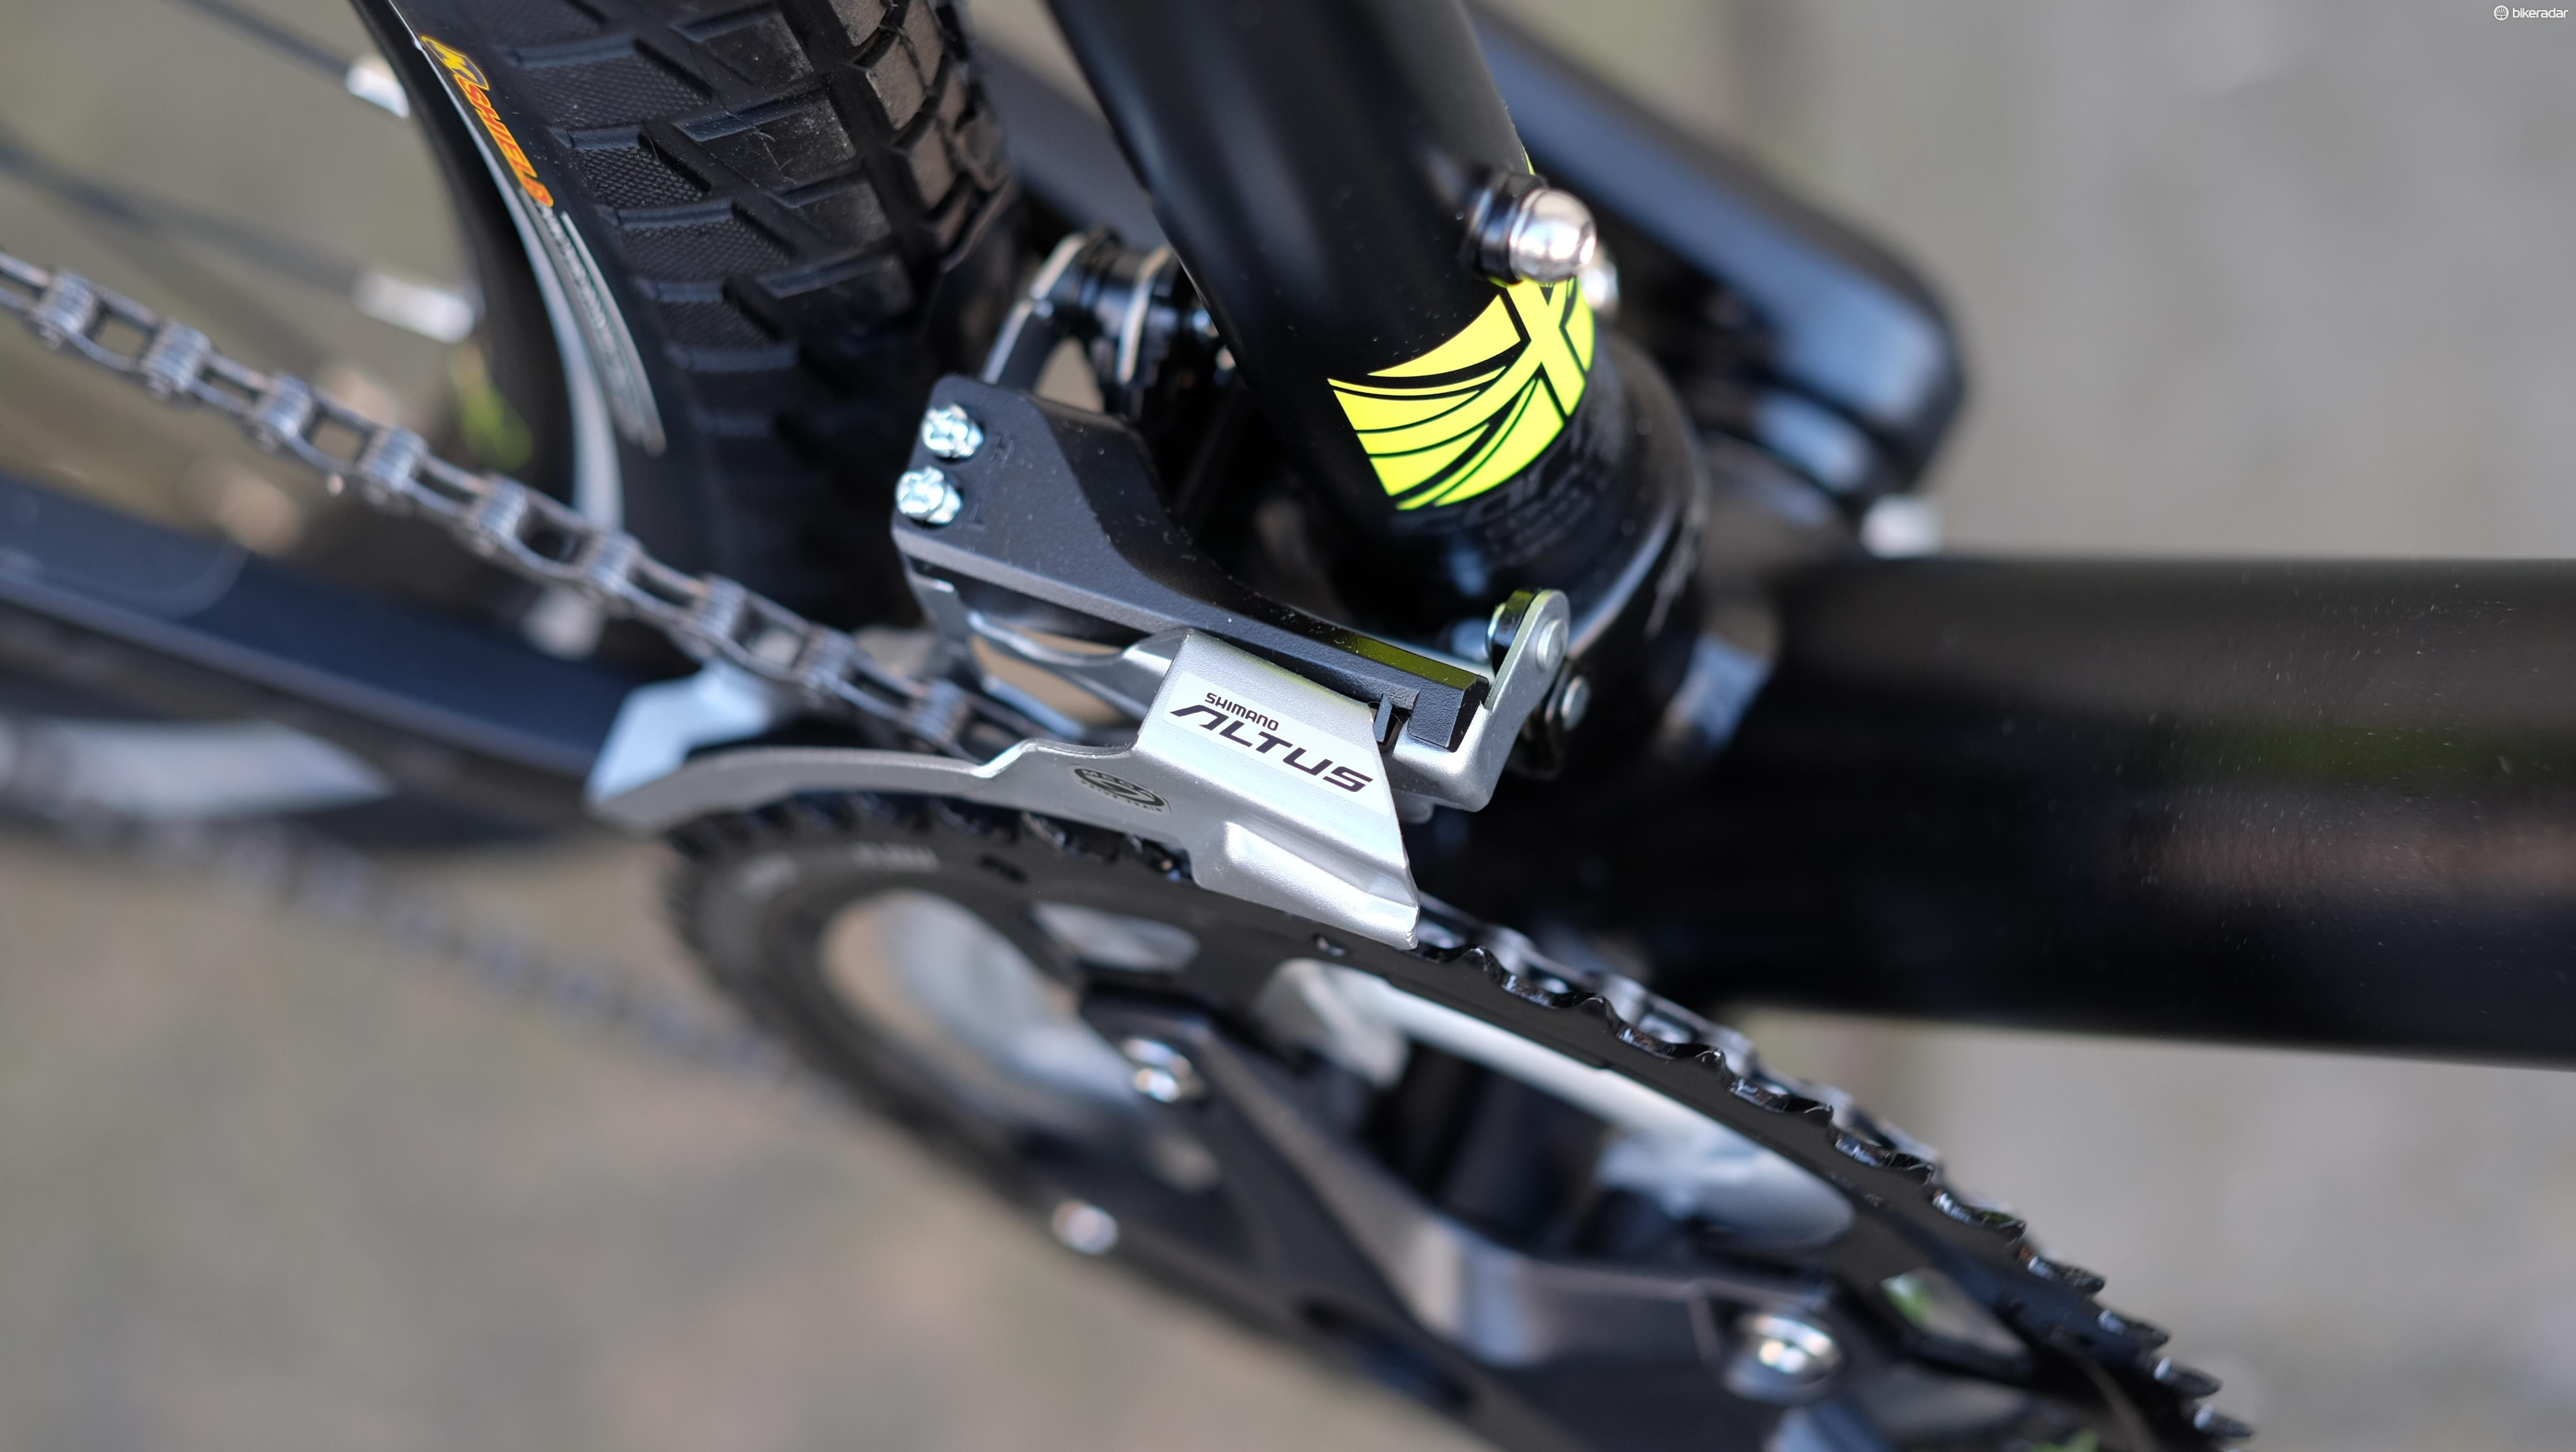 Shimano's Altus gearing isn't the prettiest but works just fine